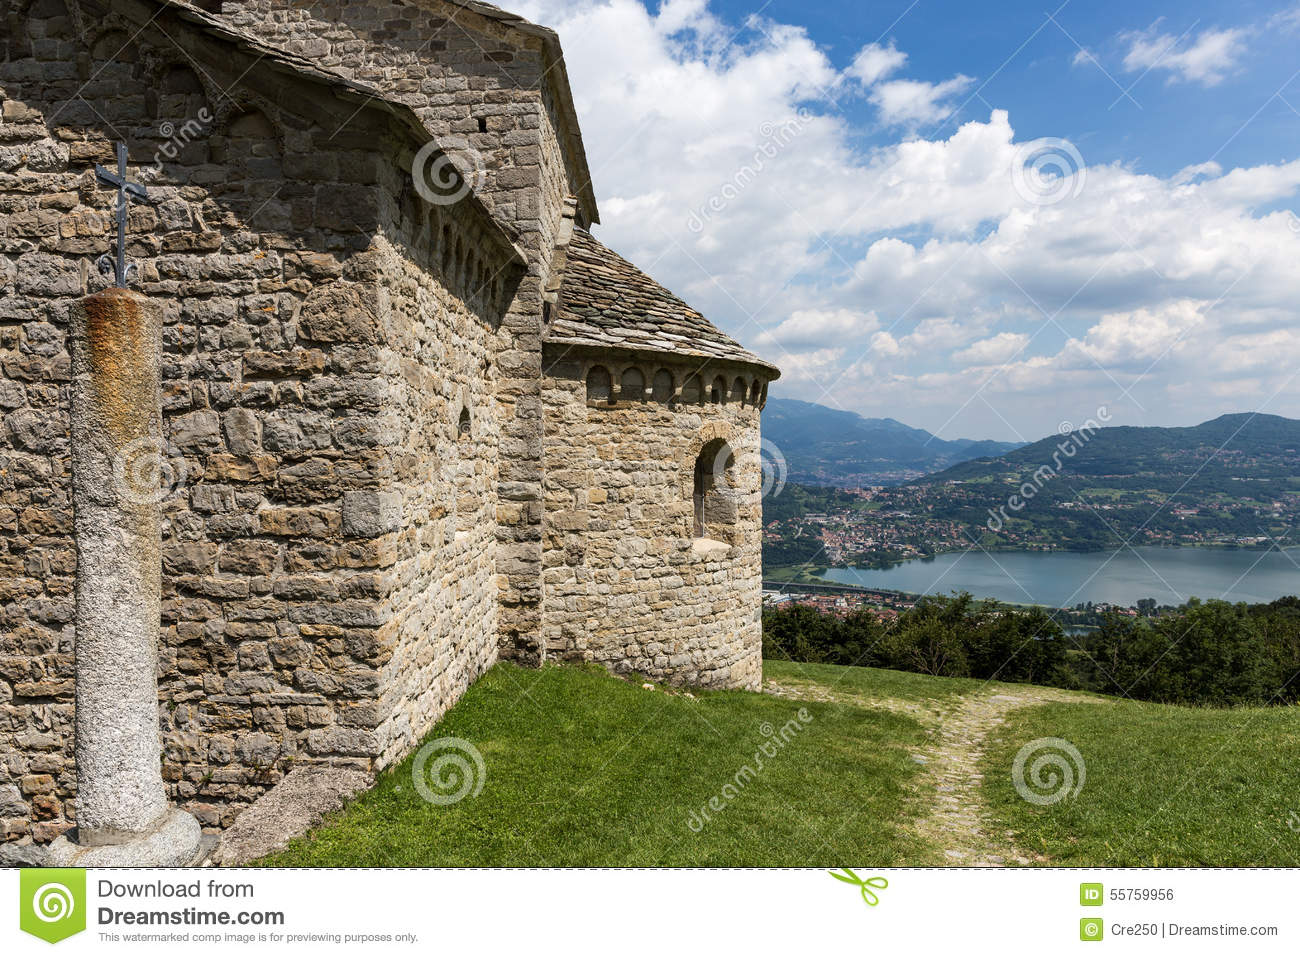 Kirche des Saint Pierre in Civate Lecco Italien